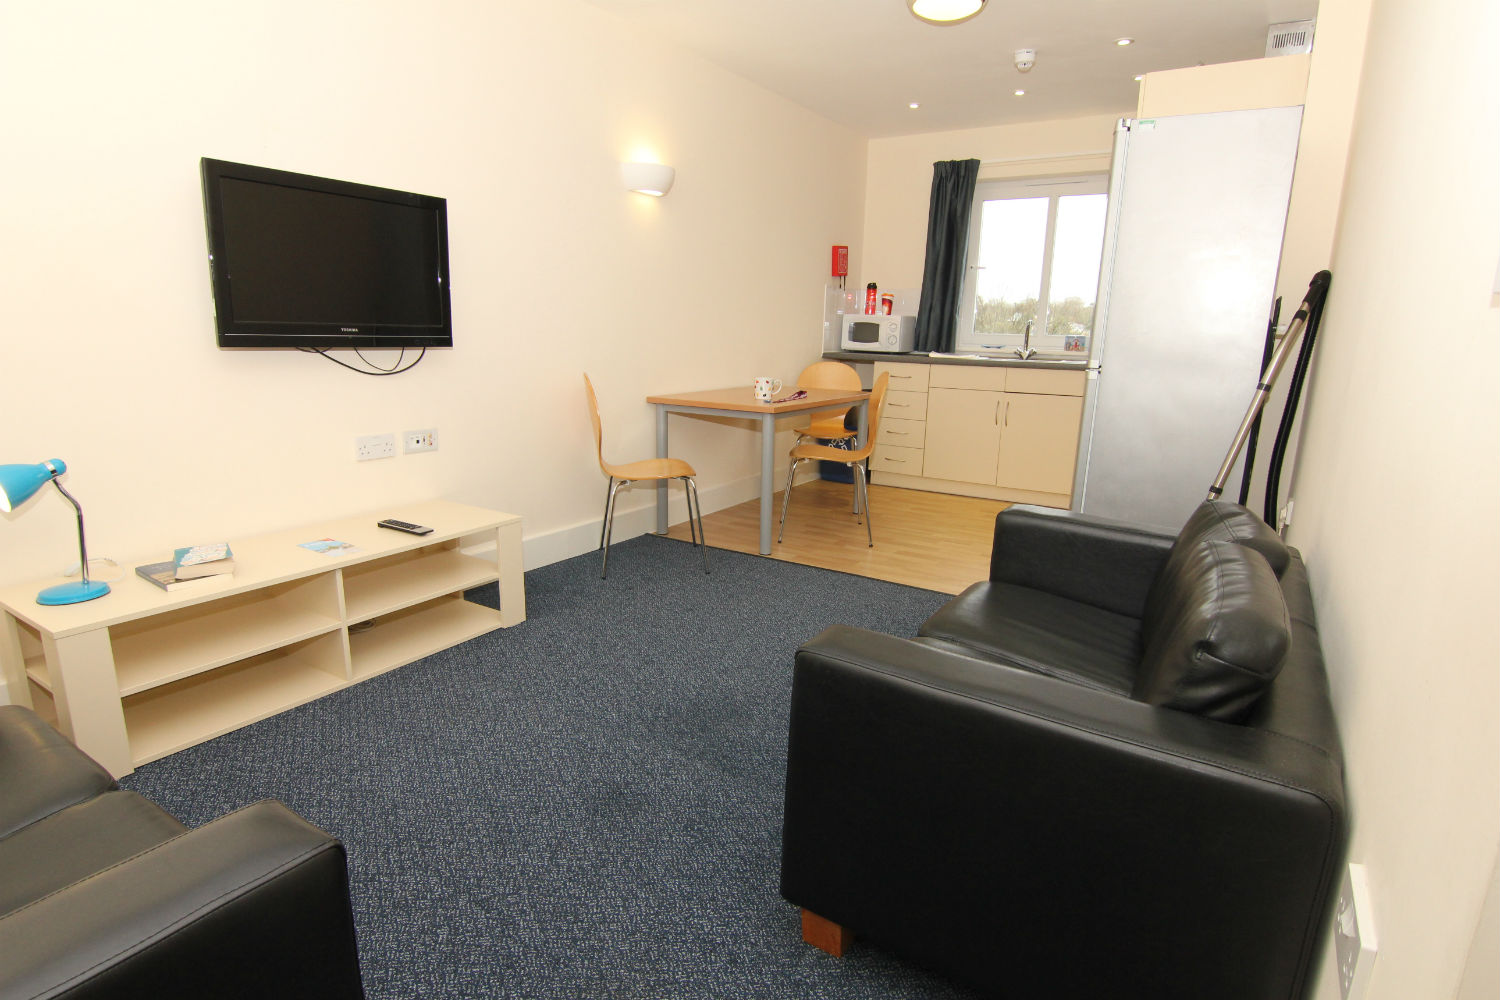 One bedroom flat at The Sidings Penryn